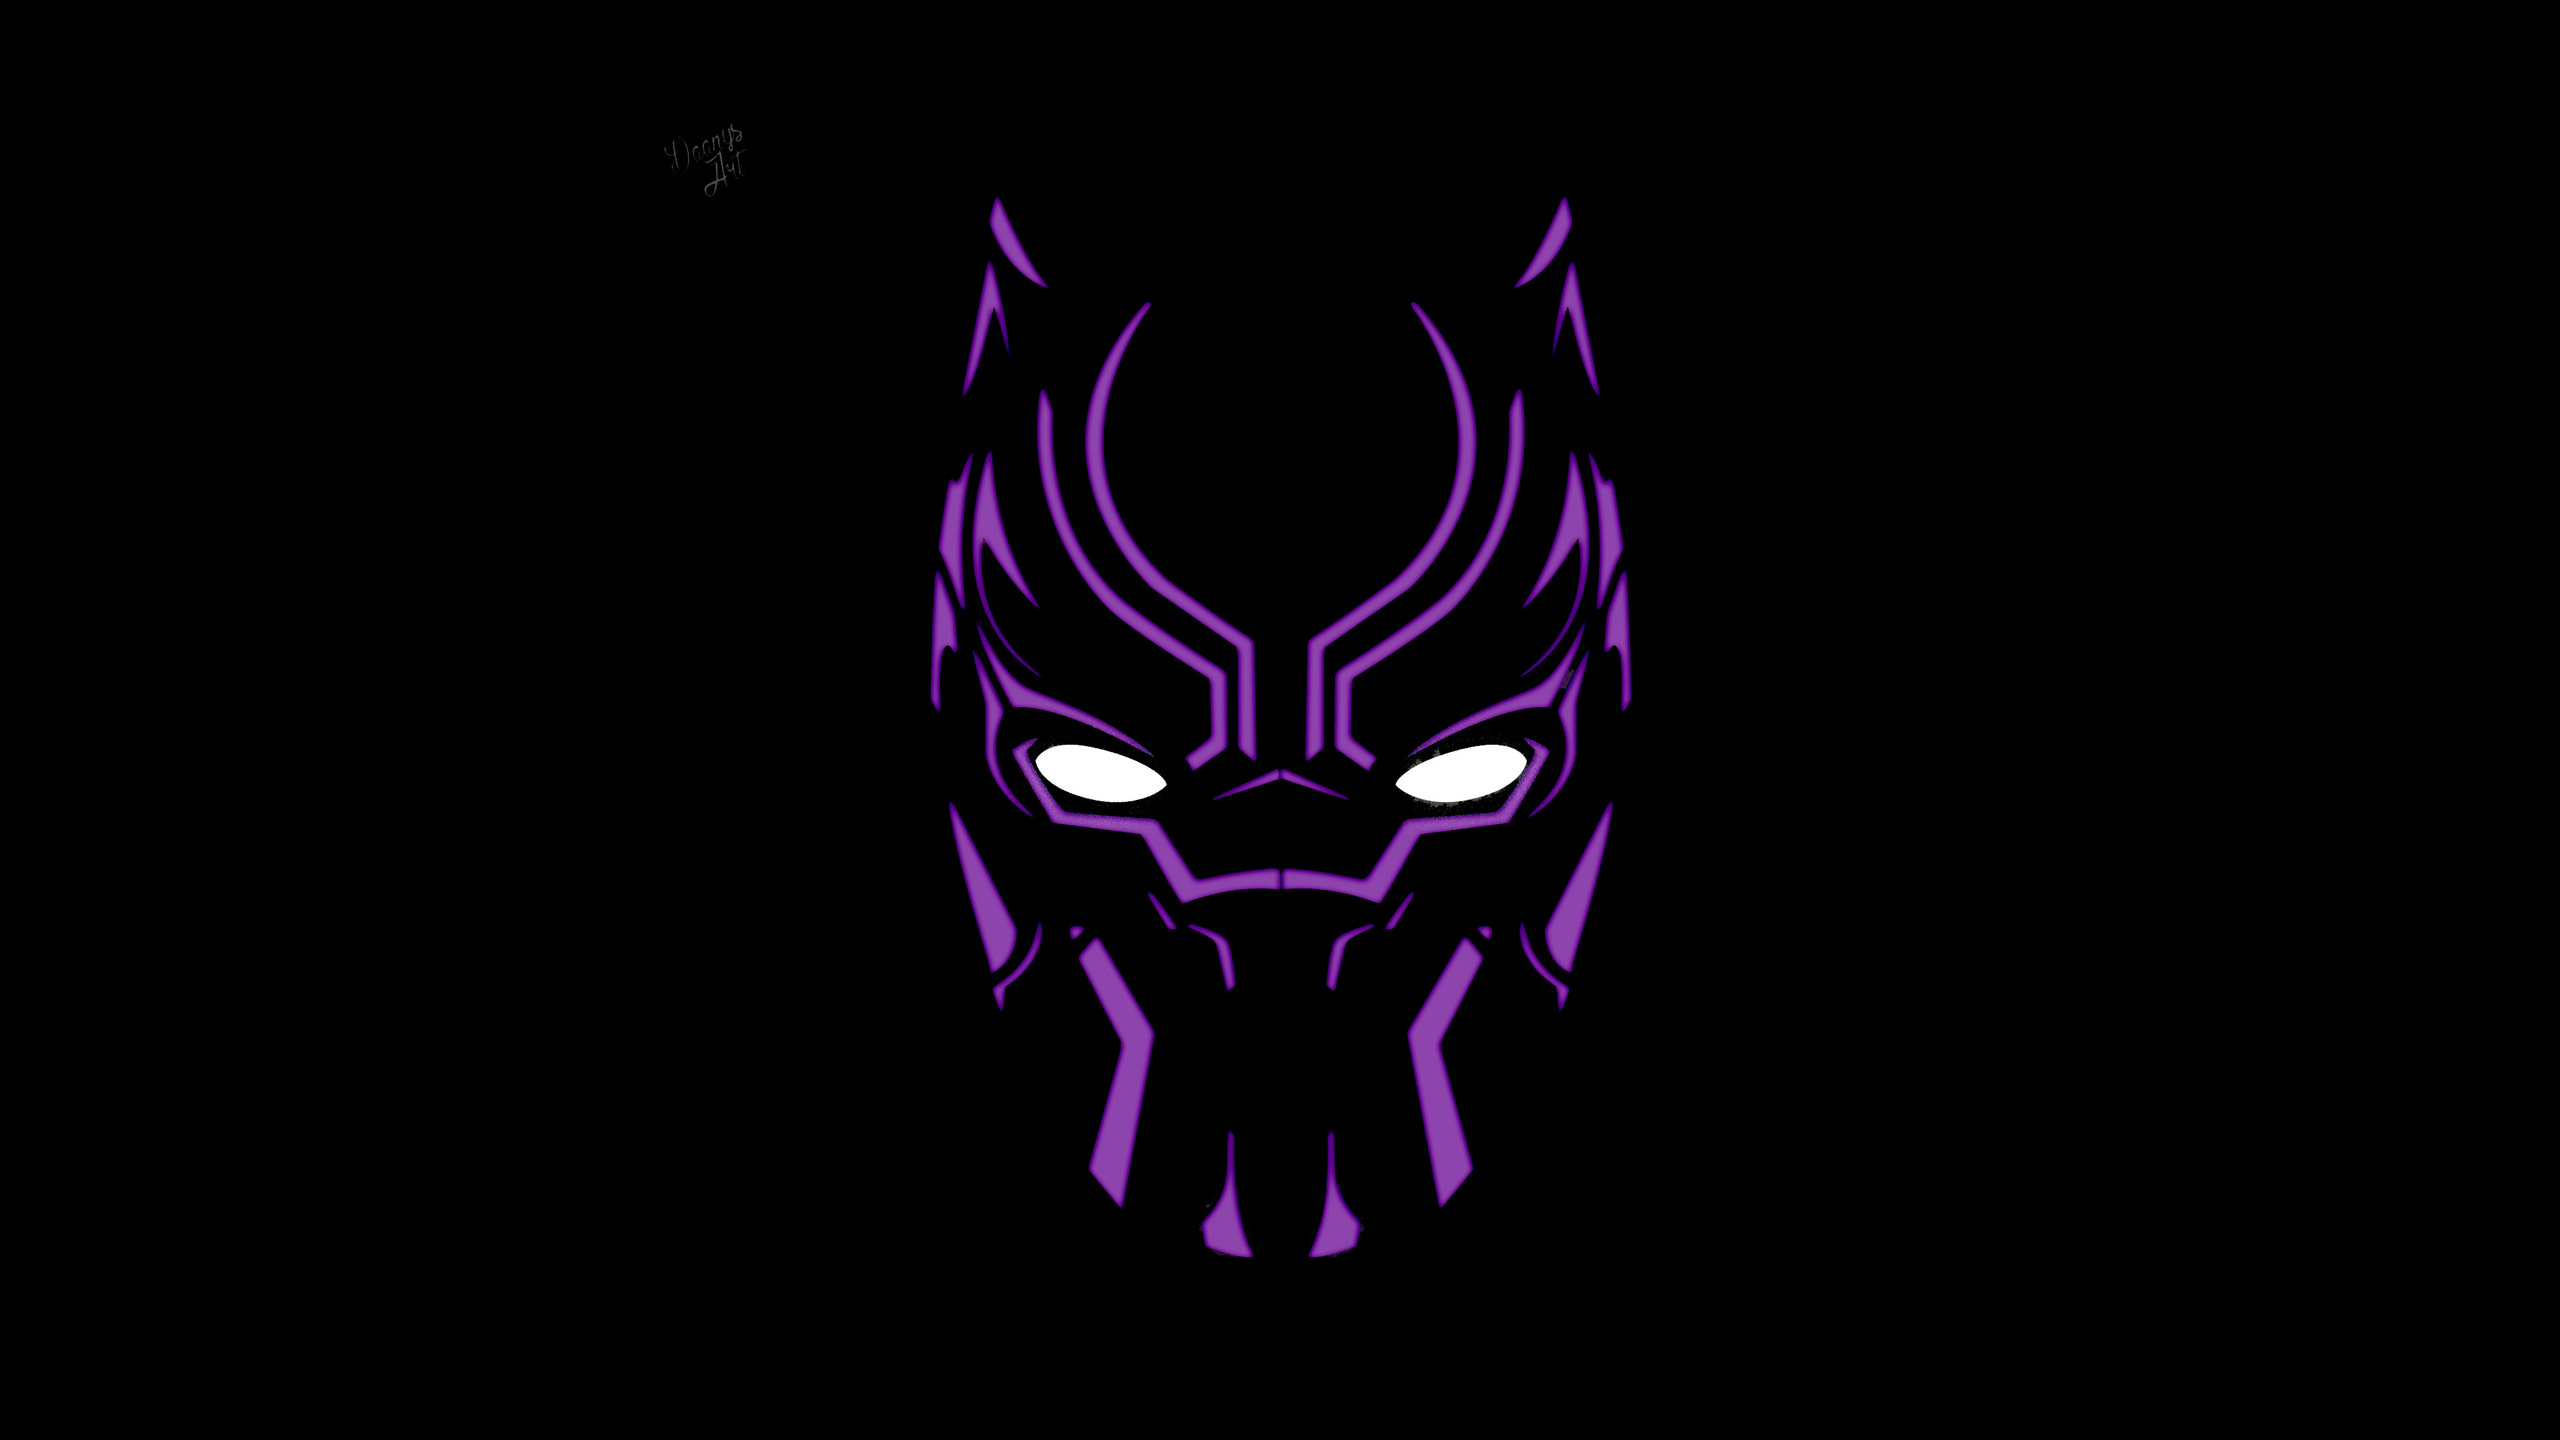 2560x1440 Black Panther Illustration 4k Artwork 1440p Resolution Hd